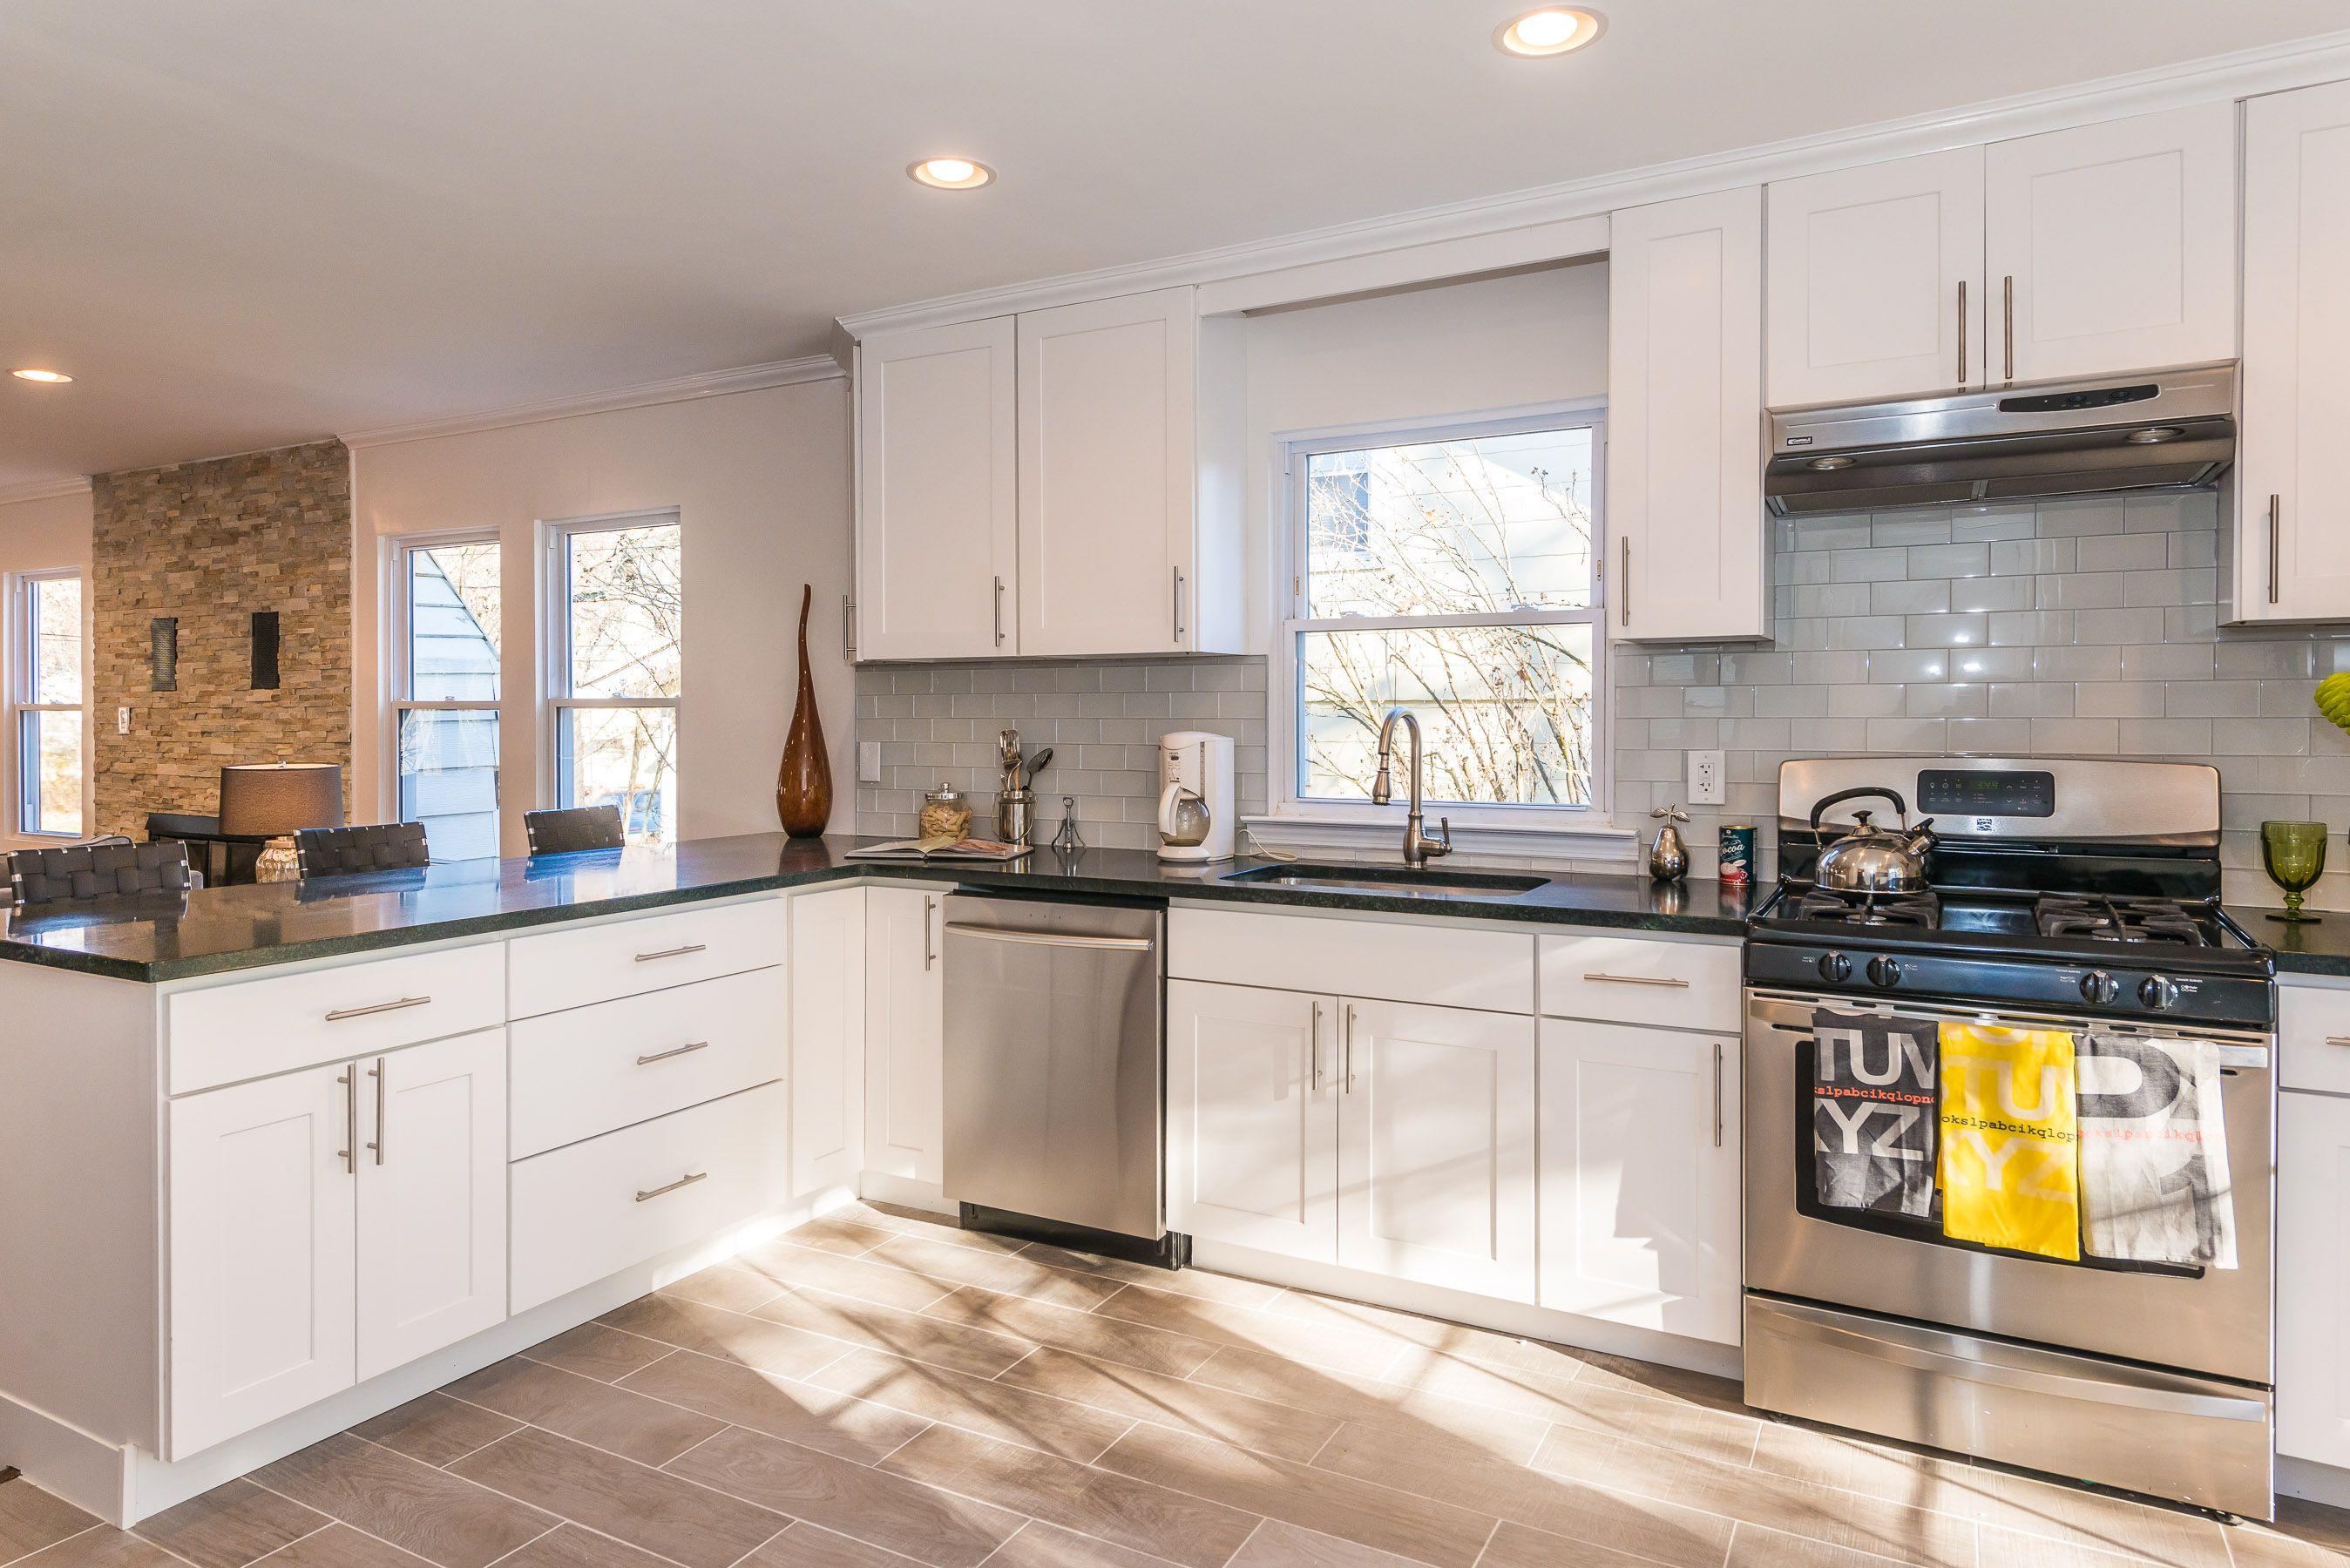 This Bright Modern Kitchen Was Designed By Cabinets Direct Usa With Wolf Classic Cabinets In Dartmouth Kitchen Plans Kitchen Paint Design New Kitchen Cabinets